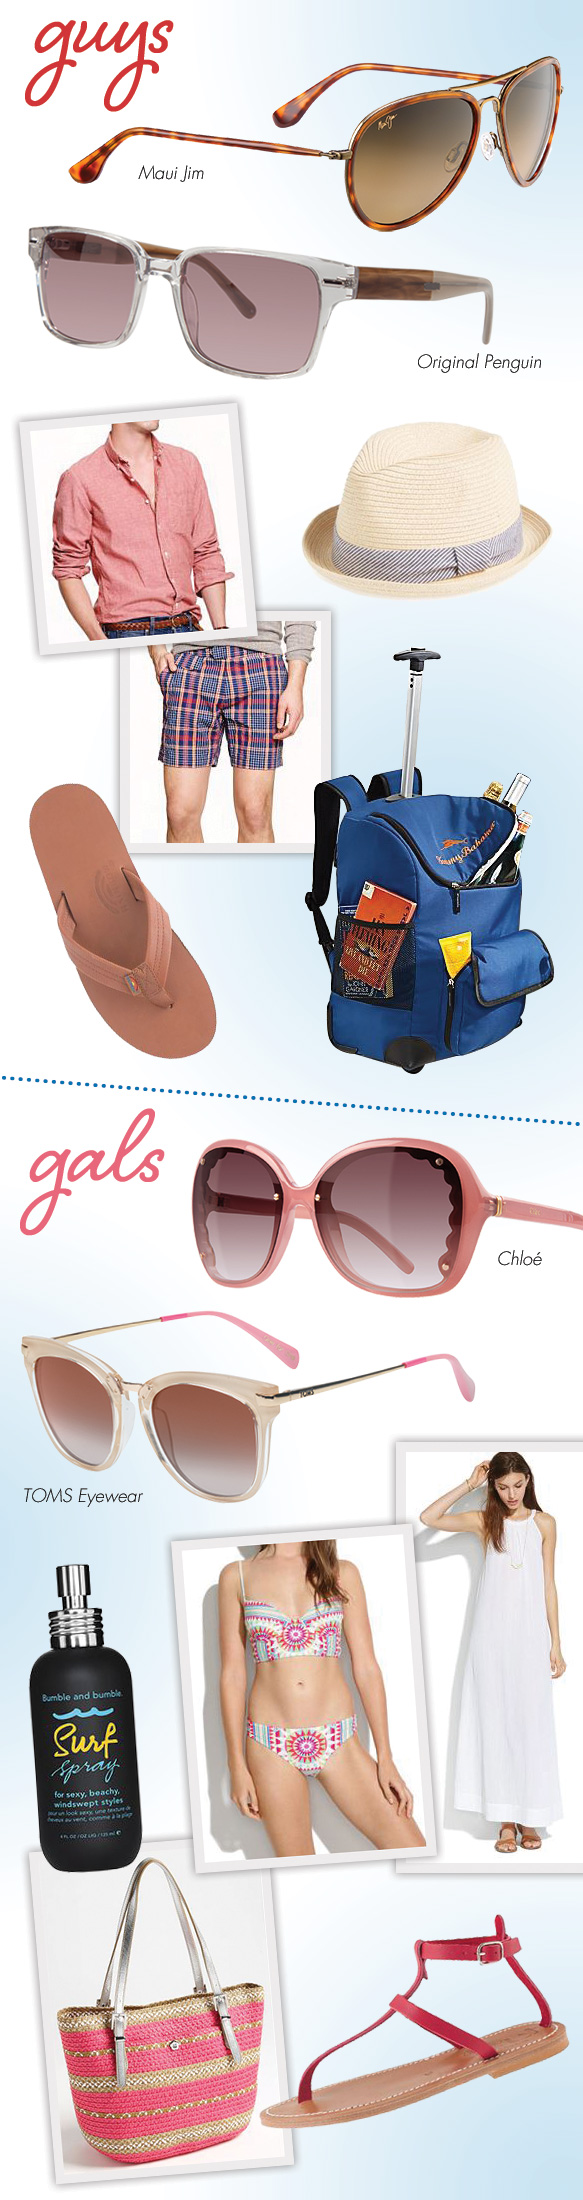 Maui Jim (Honomanu), Original Penguin (The Clancy), TOMS Eyewear (Adeline), Chloé (CE653S)